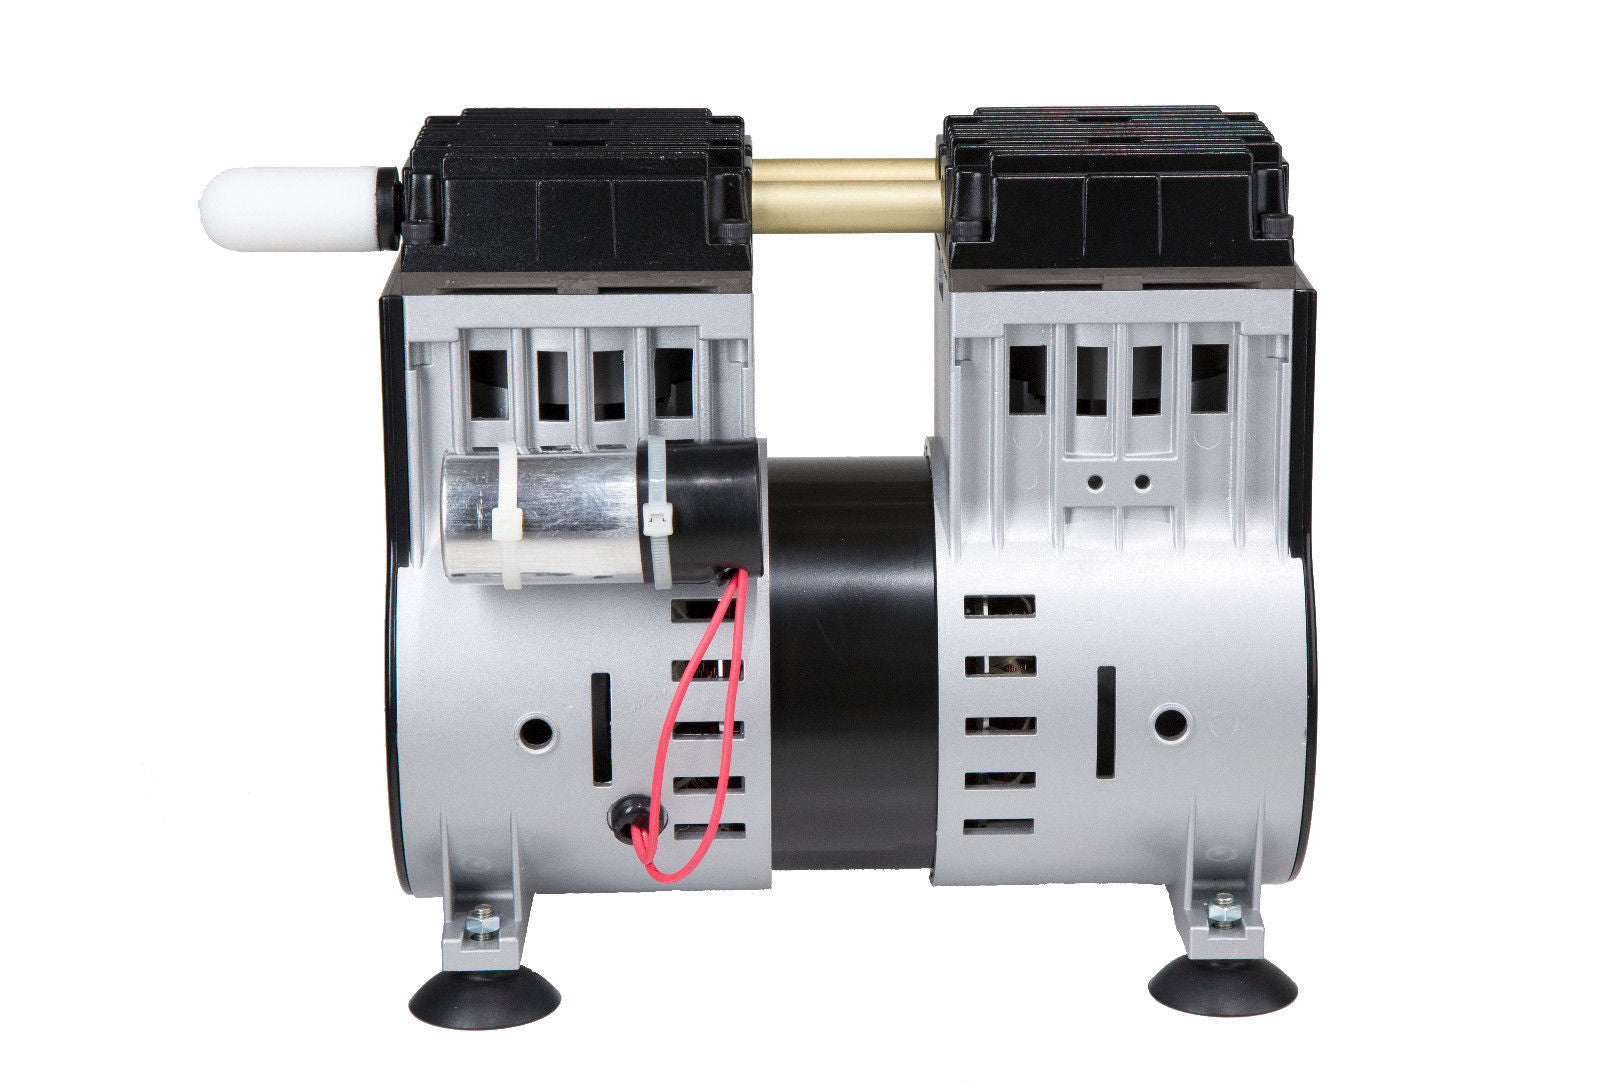 Easypro Erp75 3 4 Hp Rocking Piston Pond Air Compressor Great 12 Volt Wiring Diagram For Thomas Aerator